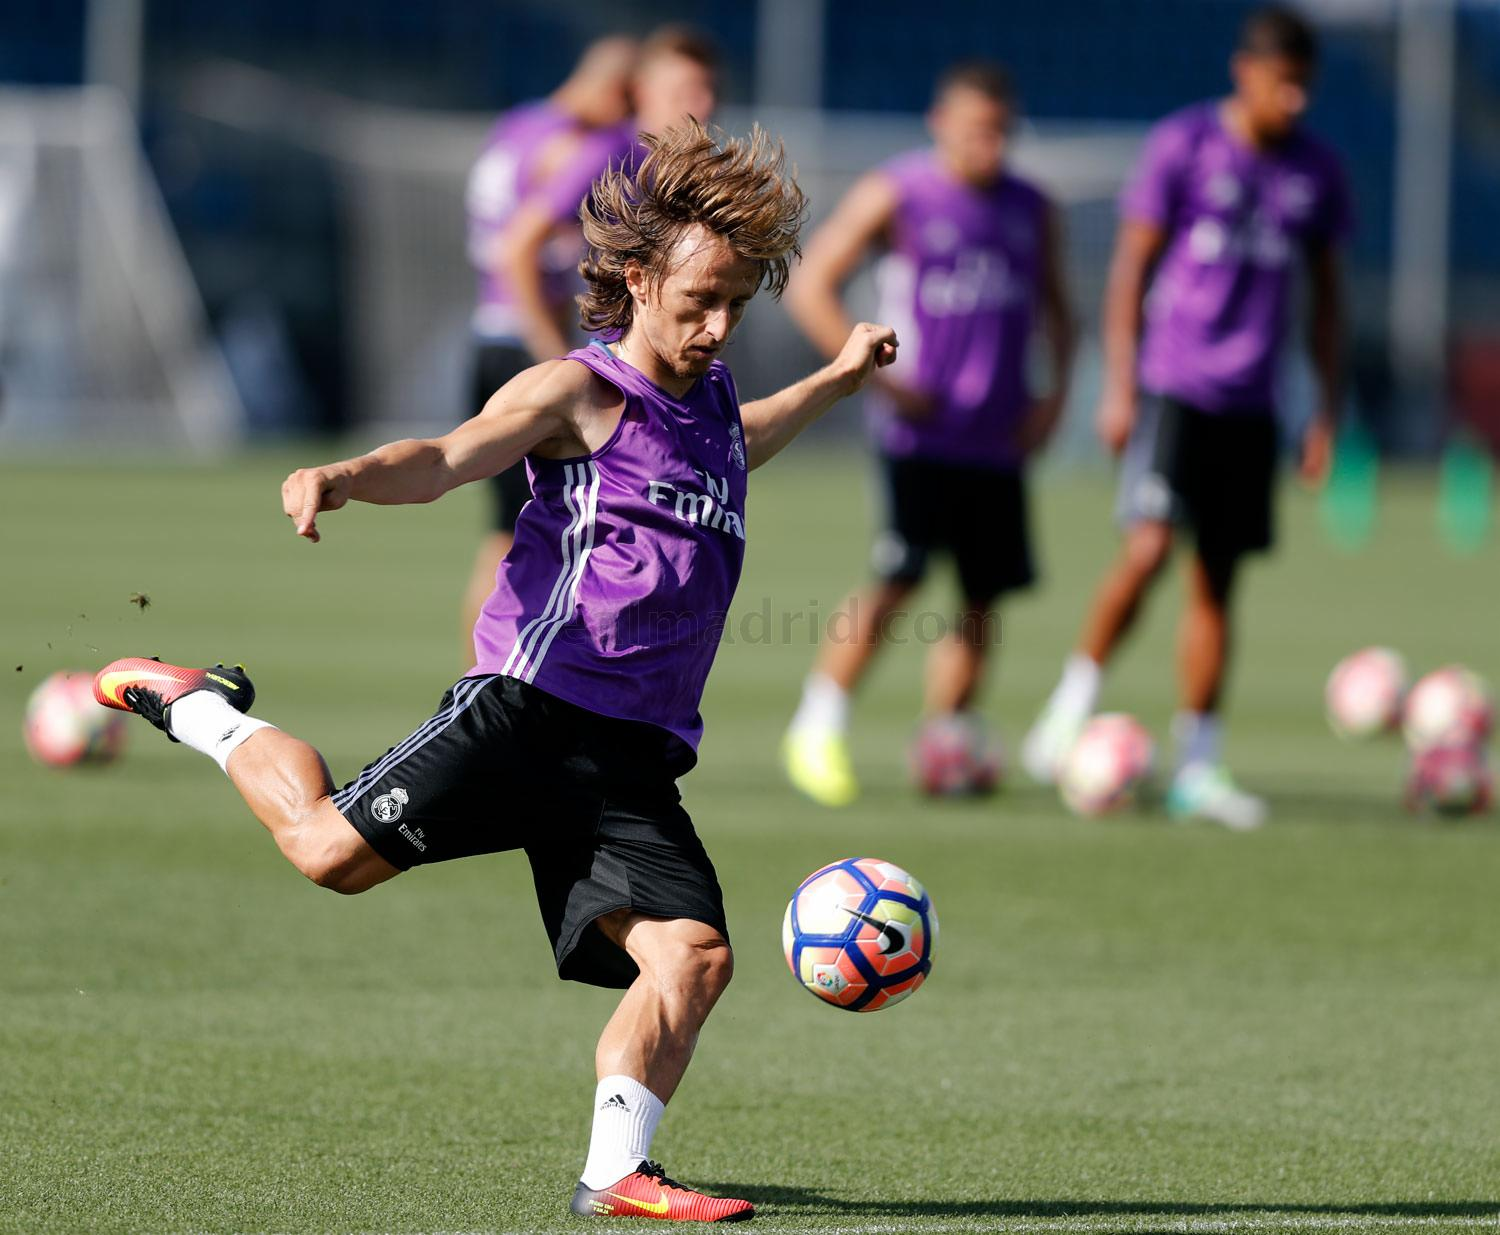 Real Madrid - Entrenamiento del Real Madrid - 26-08-2016